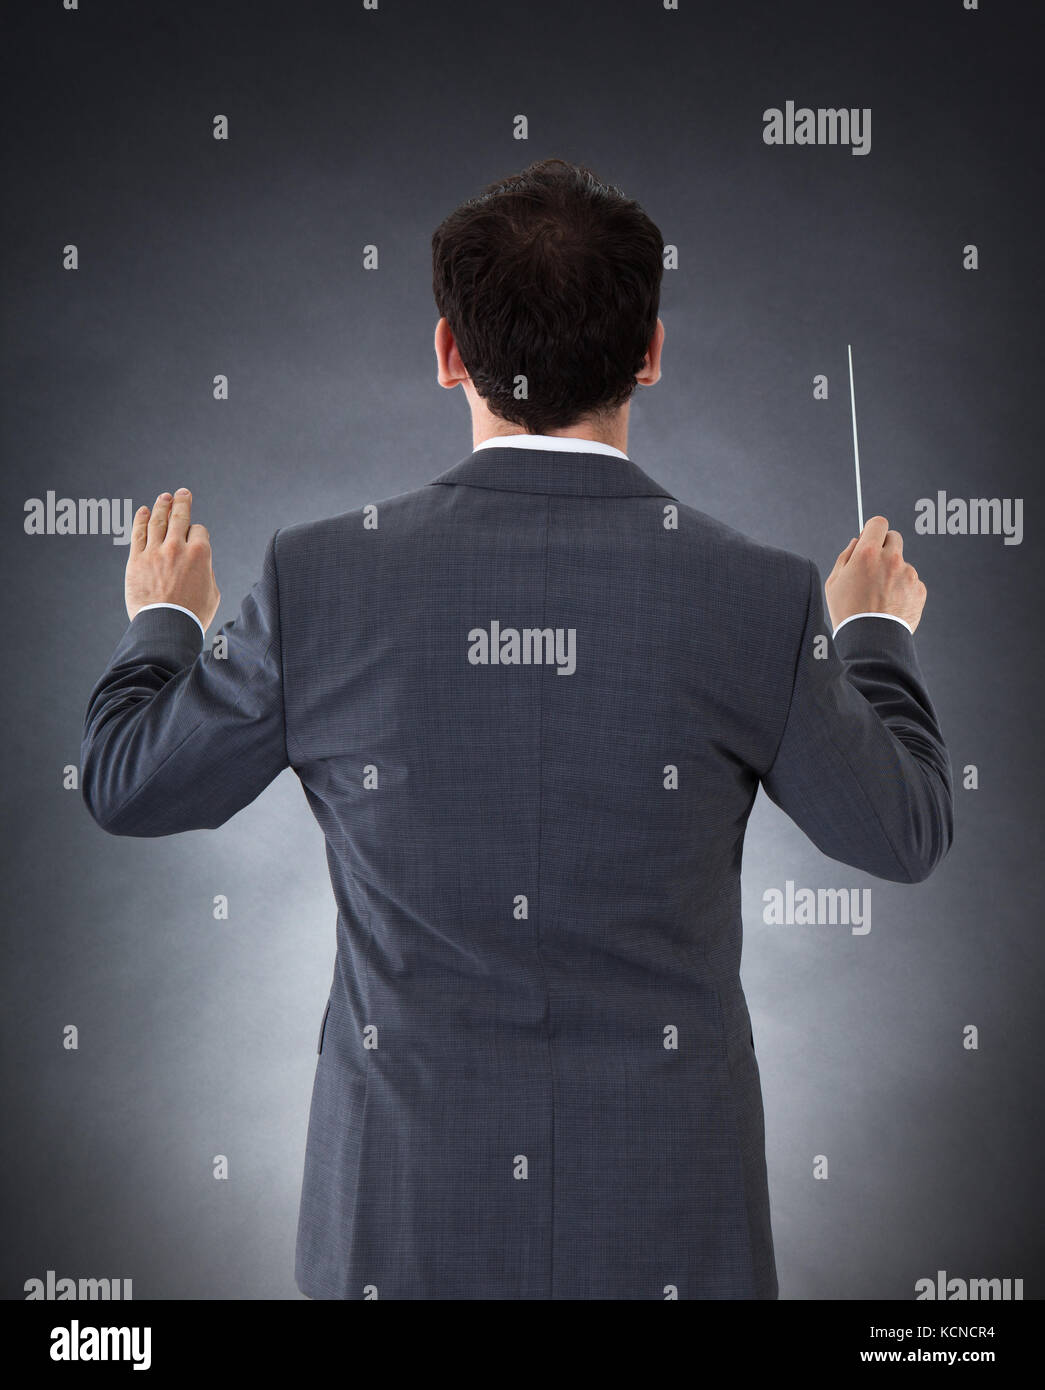 Male Orchestra Conductor Directing With Baton Over Black Background - Stock Image